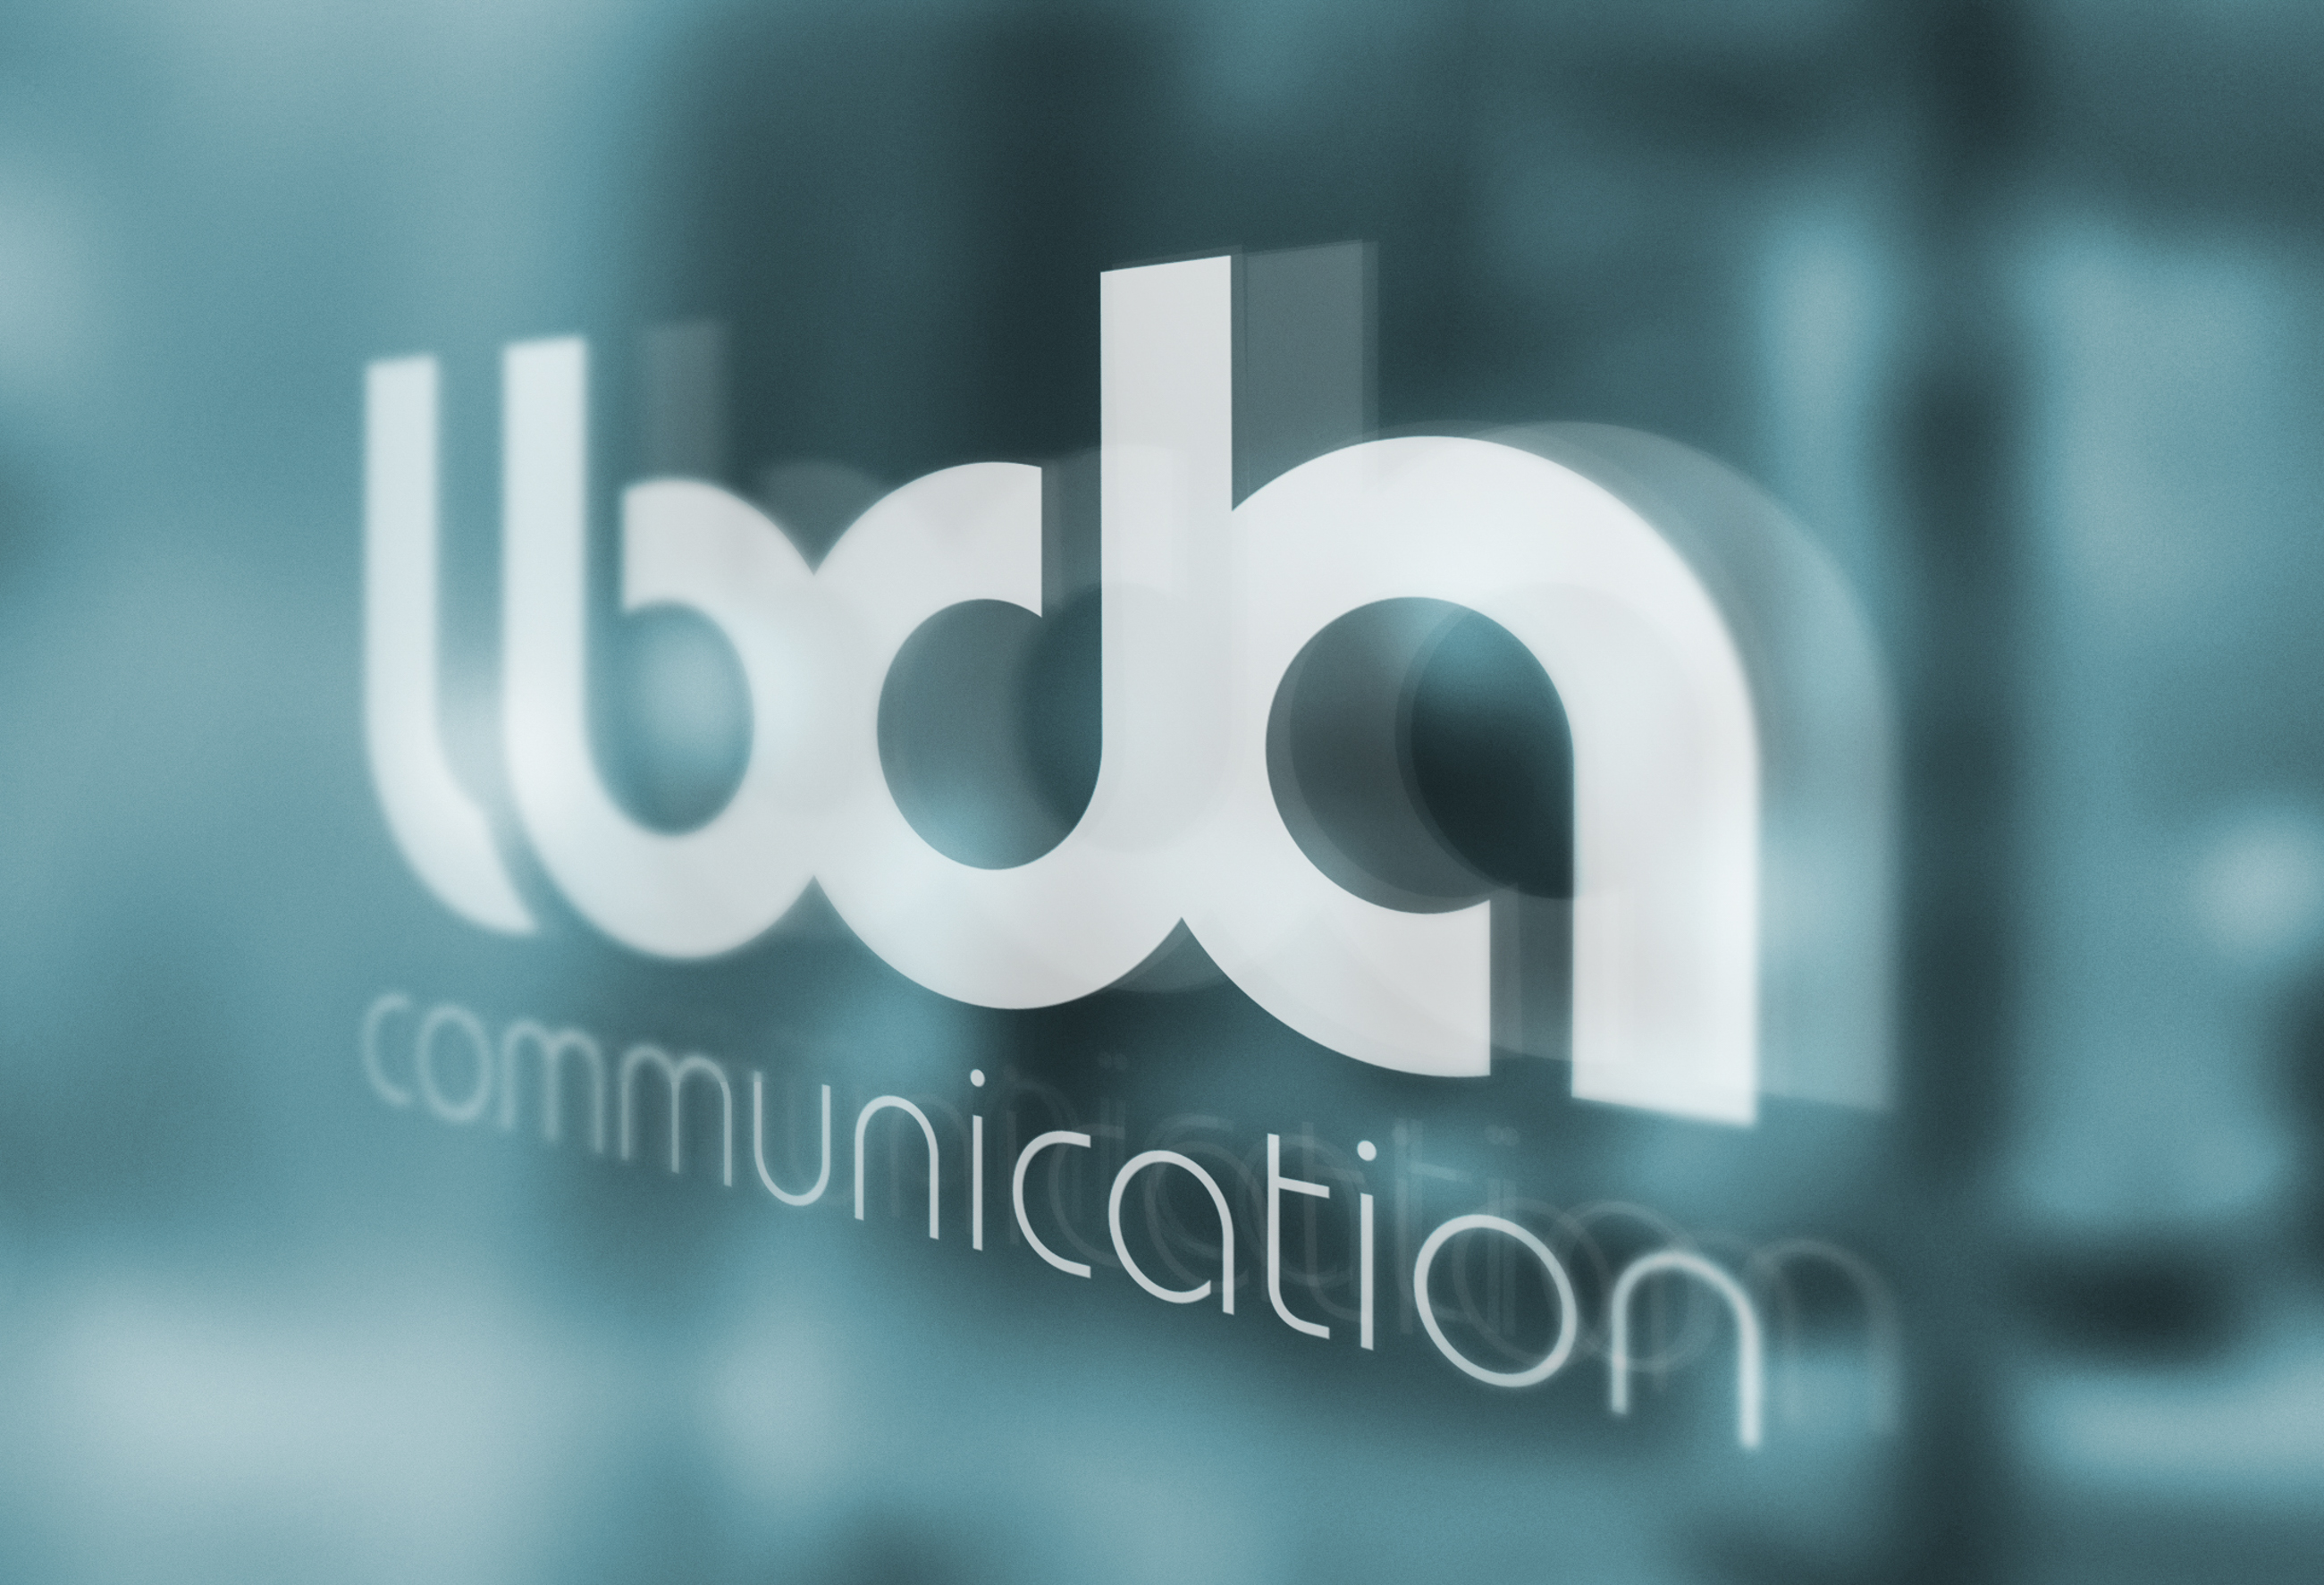 Agence de communication-lbda-Arras